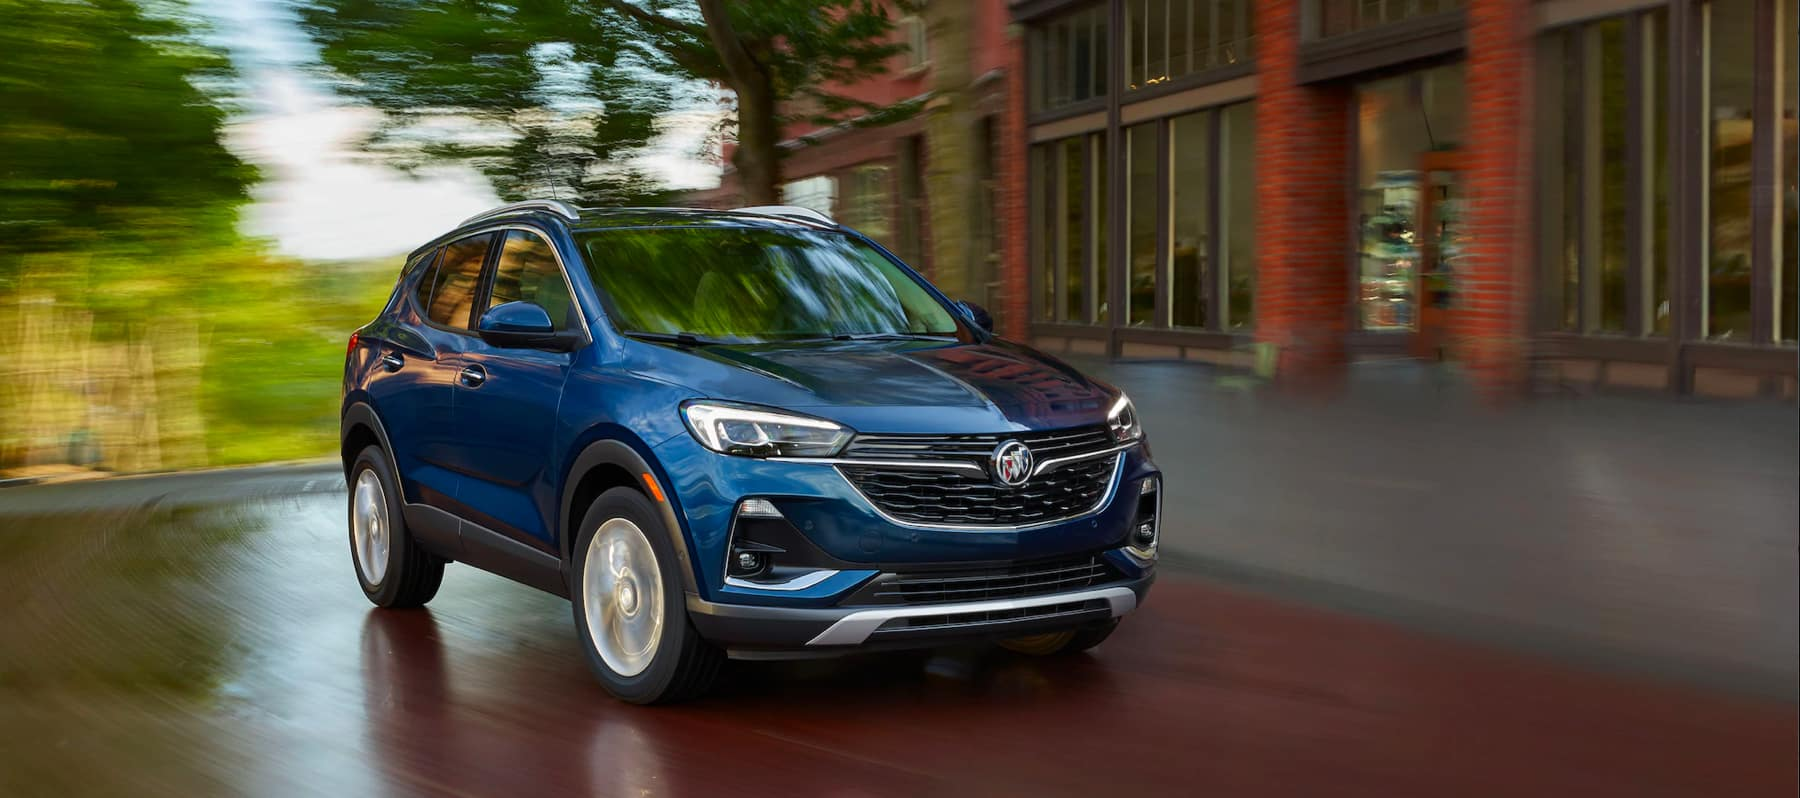 Buick Encore speeds past red bricked building